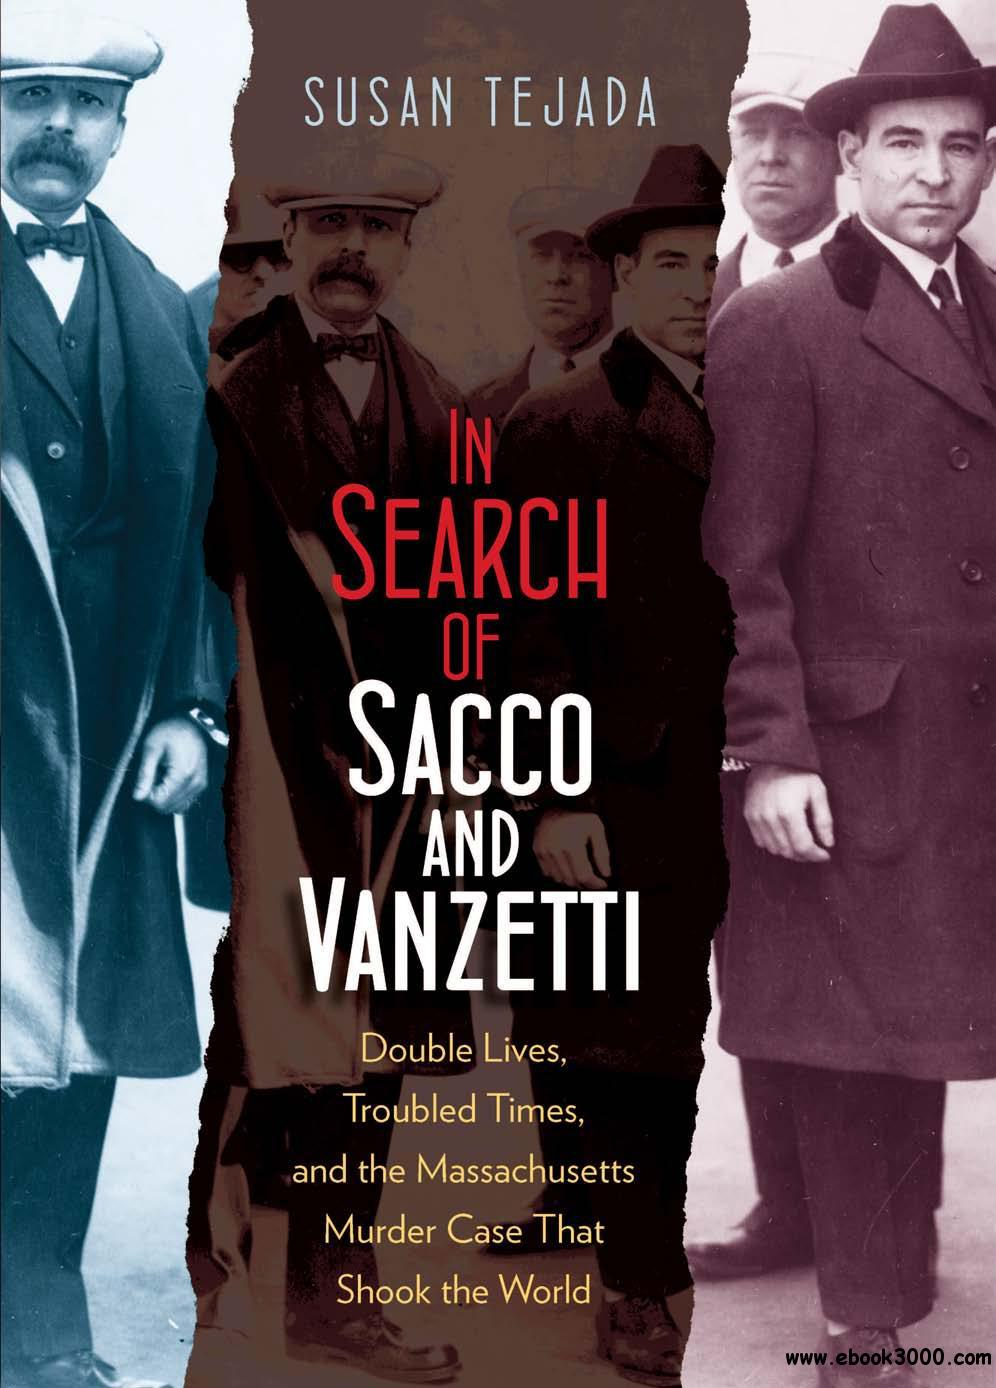 In Search of Sacco and Vanzetti: Double Lives, Troubled Times, and the Massachusetts Murder Case That Shook the World download dree